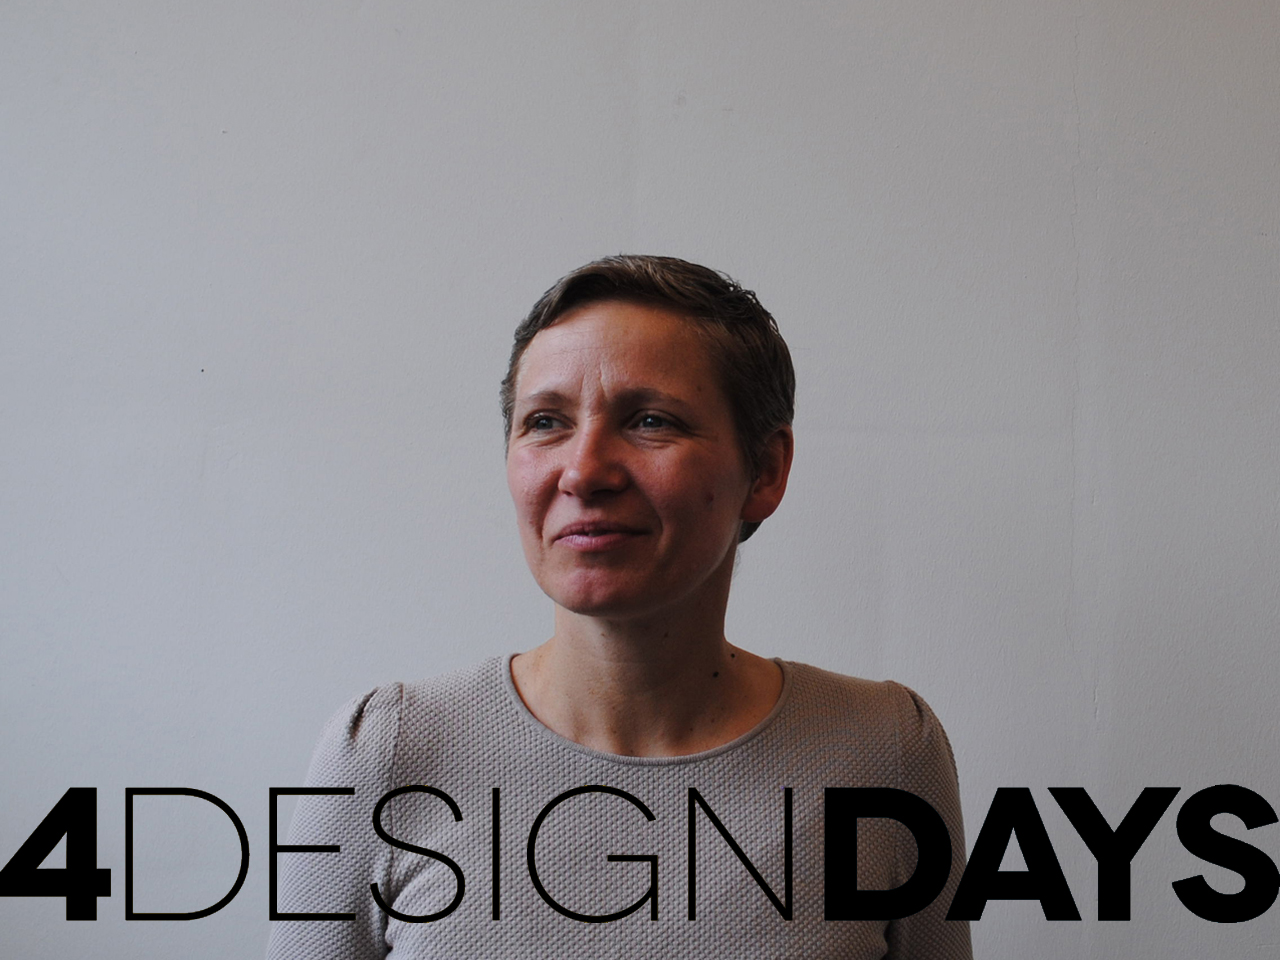 Fokke Moerel to give inaugural speech and lecture at 4 Design Days in Katowice, Poland, 11th February